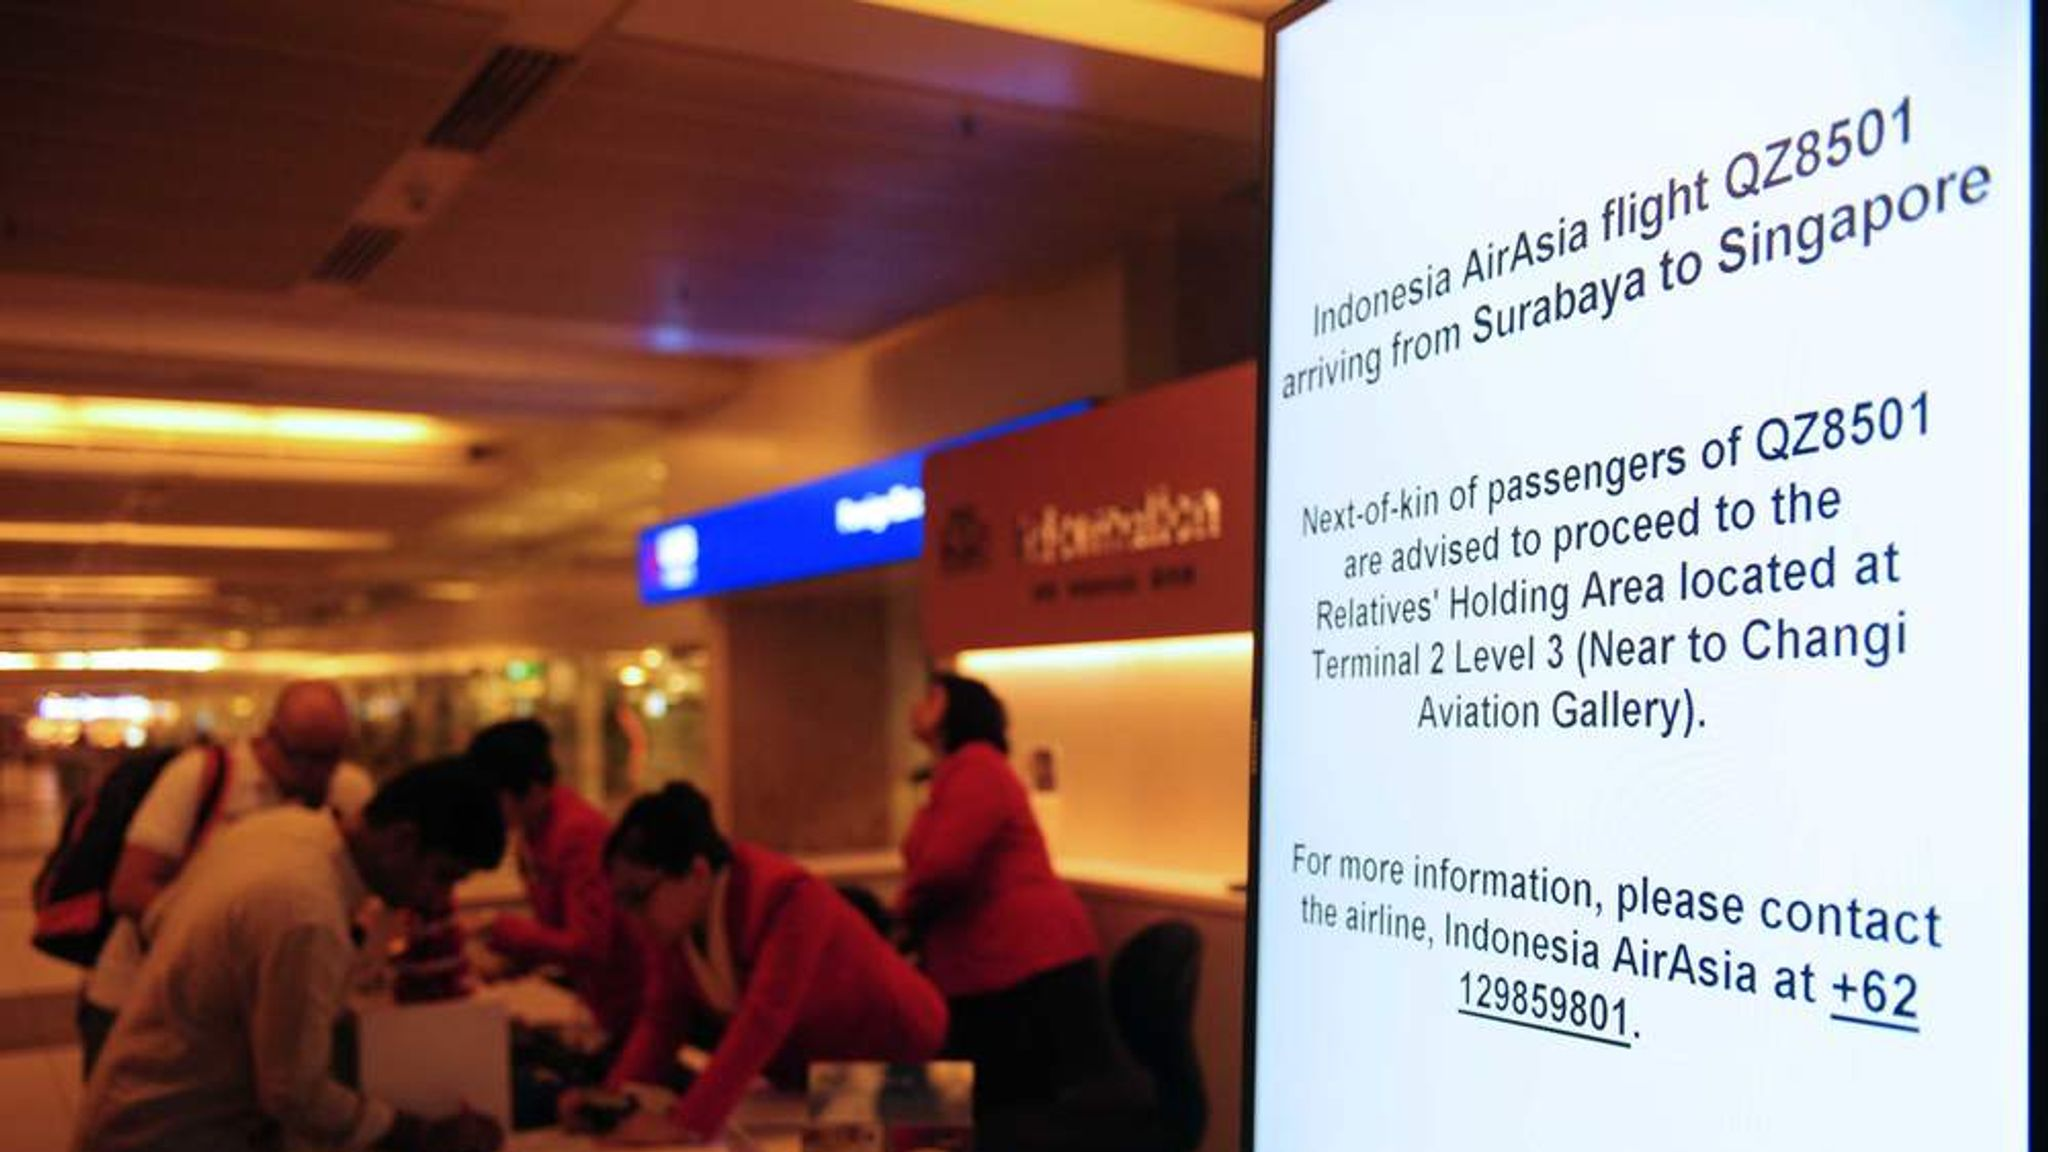 airasia essay Airasia's principal activity is to provide air transportation ser airasia has gained an award winning and most low-cost airline in asia with a fleet of 72 aircraft, airasia flies to over 61 domestic and.